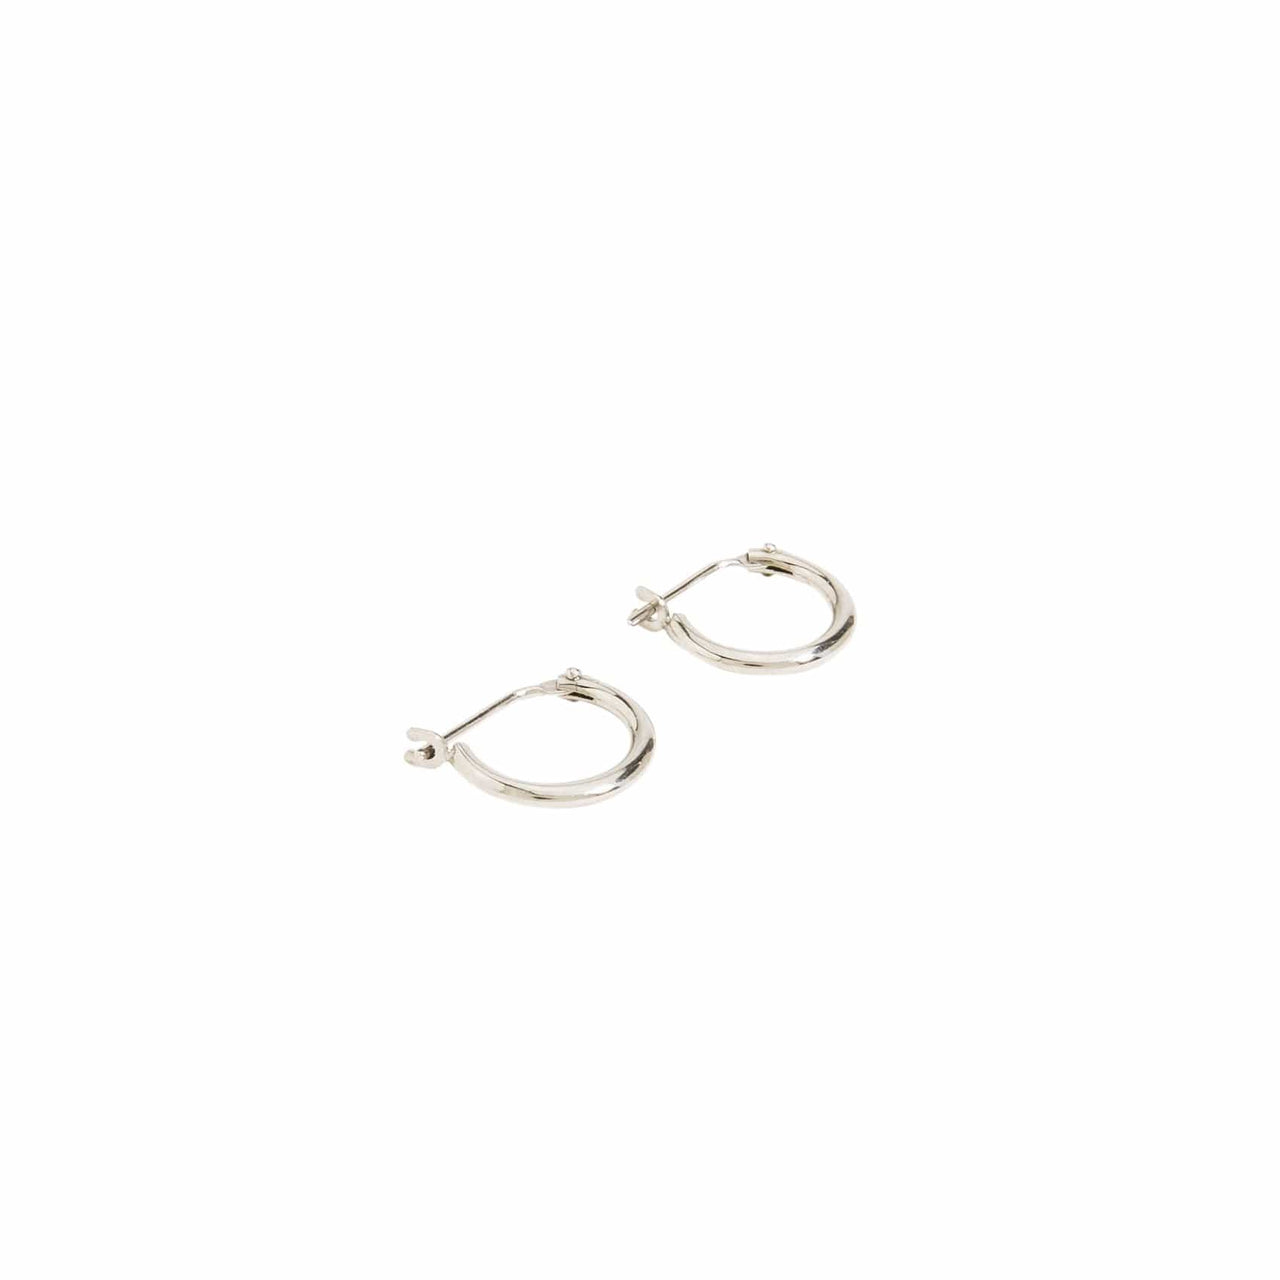 AMARILO Earrings Mini Hoops